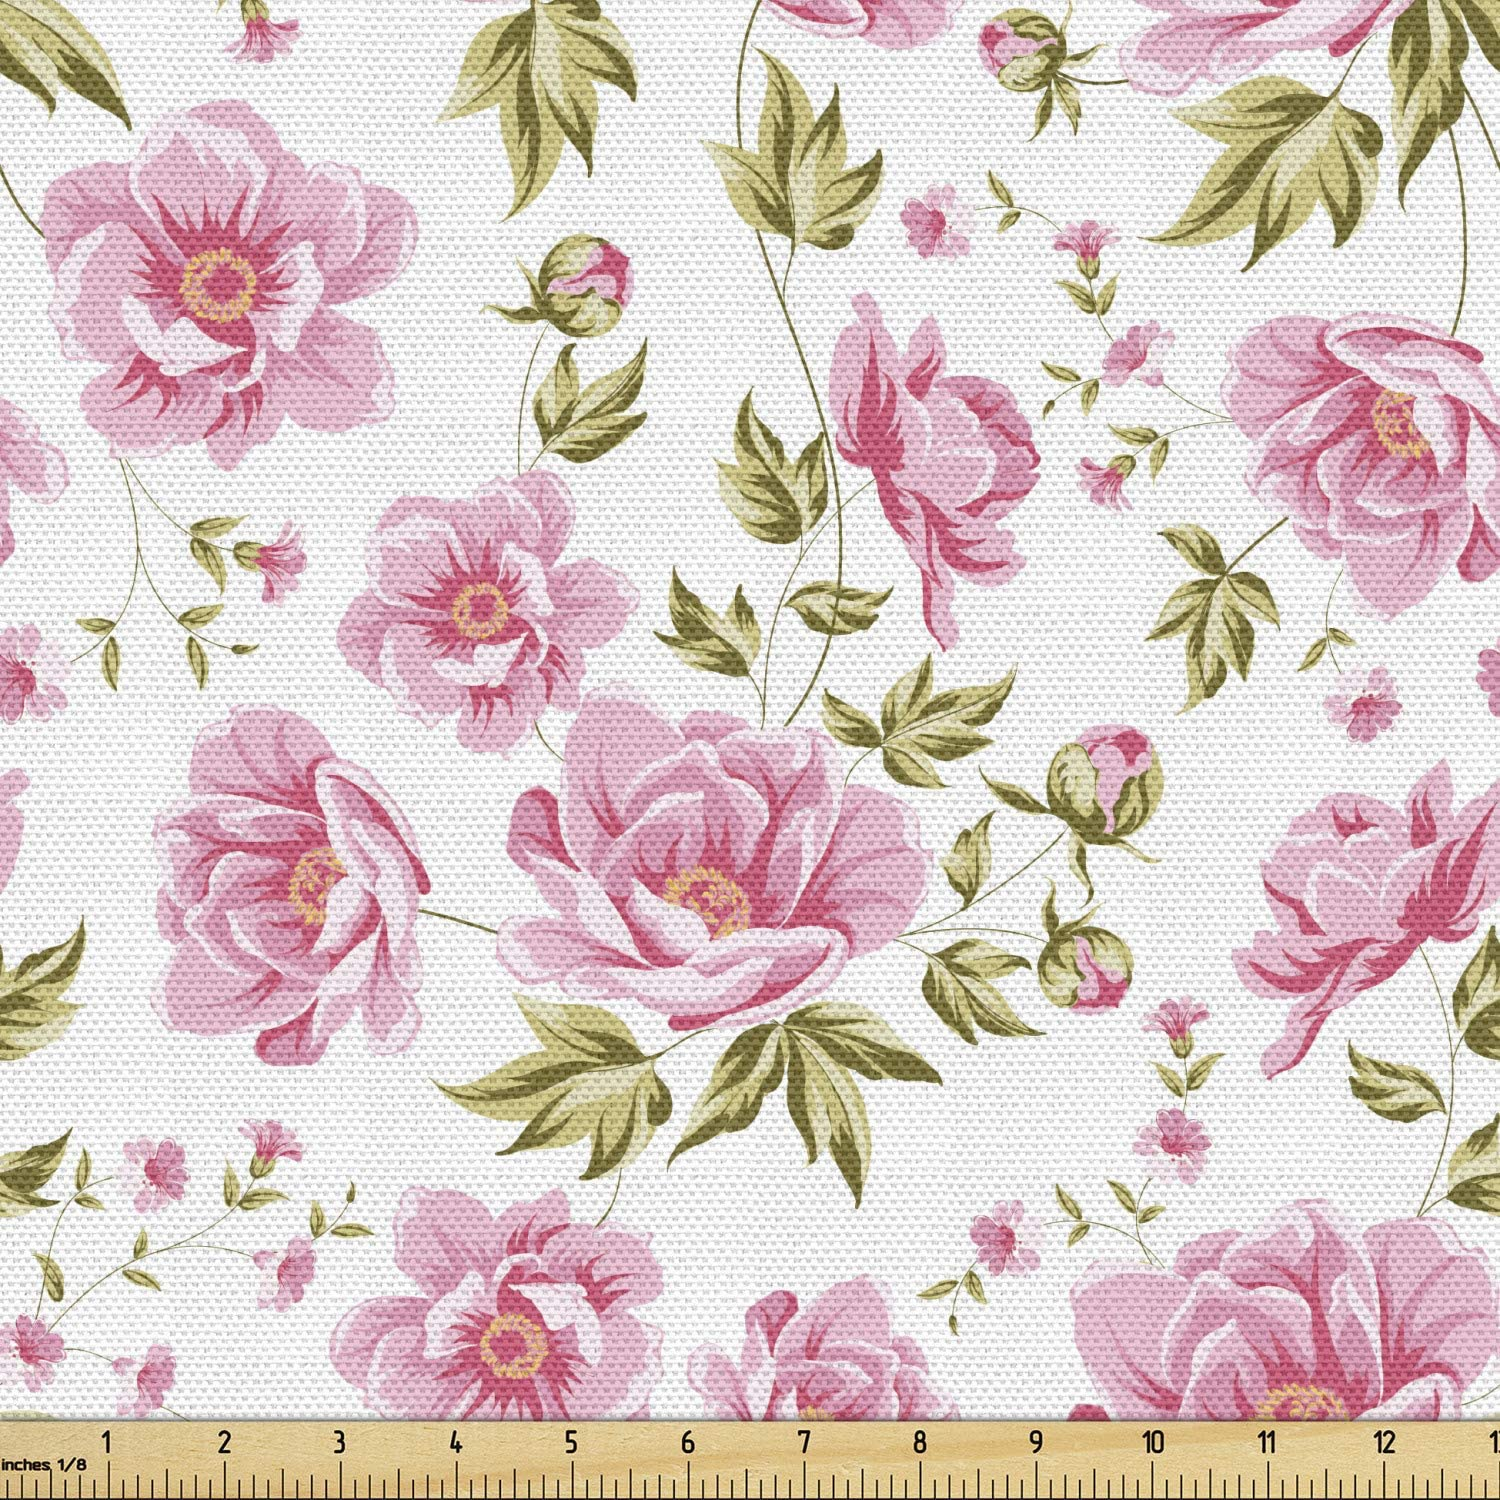 Amazon Com Ambesonne Floral Fabric By The Yard Peony Floral Pattern With The Leaves Vintage Style In Graphic Print Boho Art Decorative Fabric For Upholstery And Home Accents Green Pink White